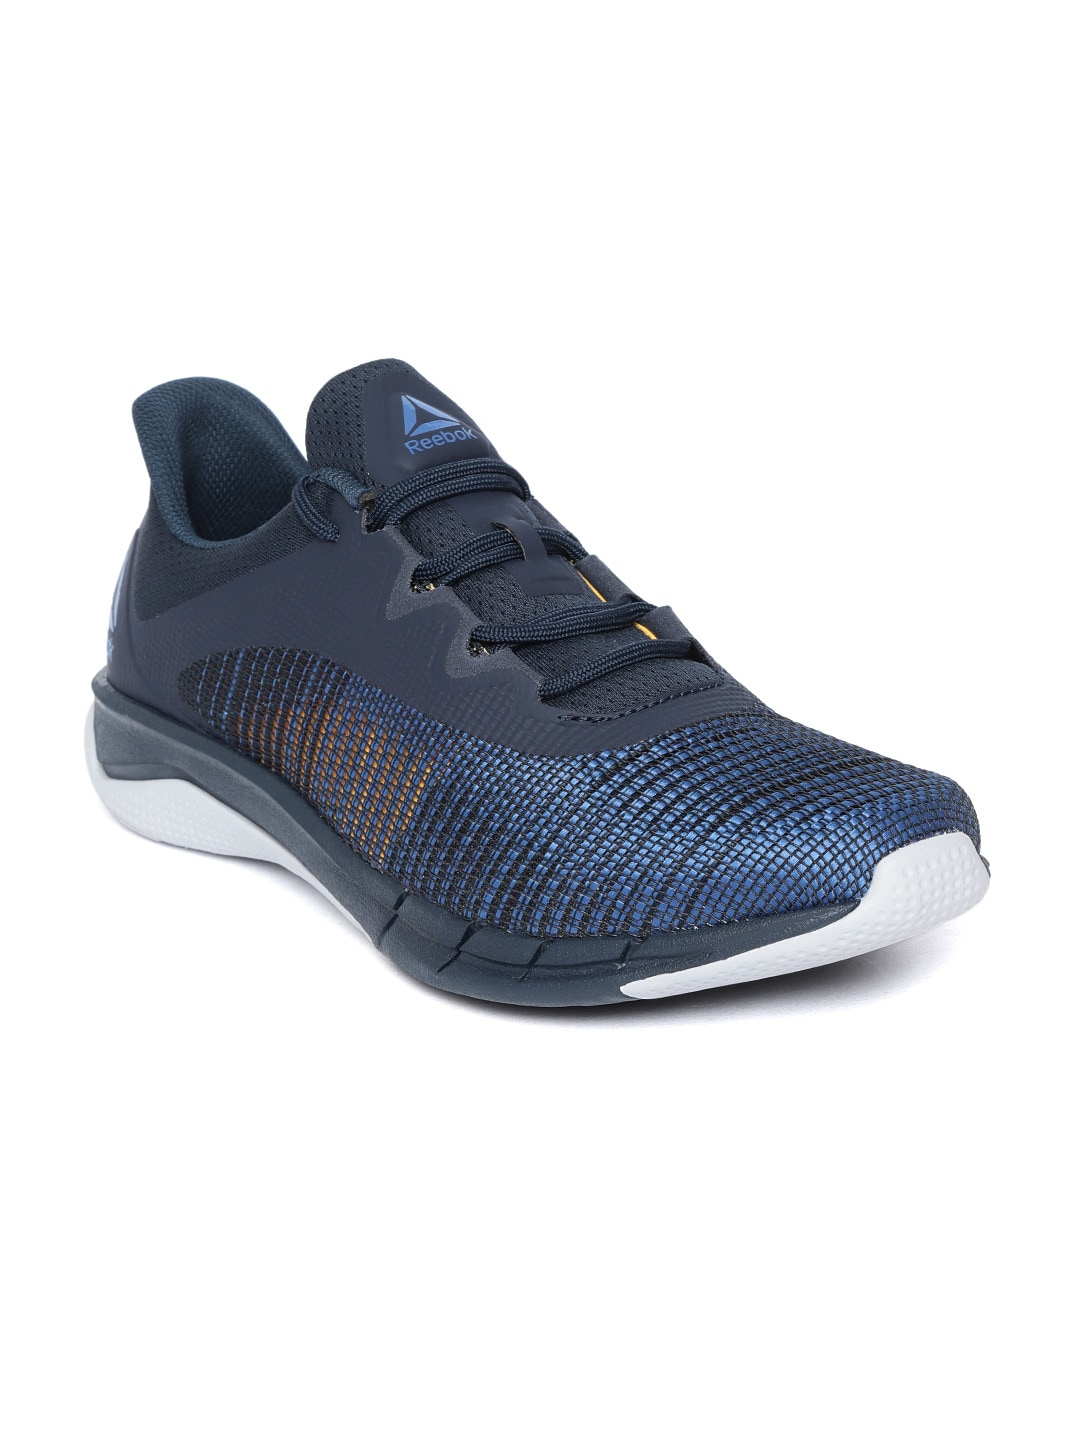 46057900546 Reebok Shoes - Buy Reebok Shoes For Men   Women Online